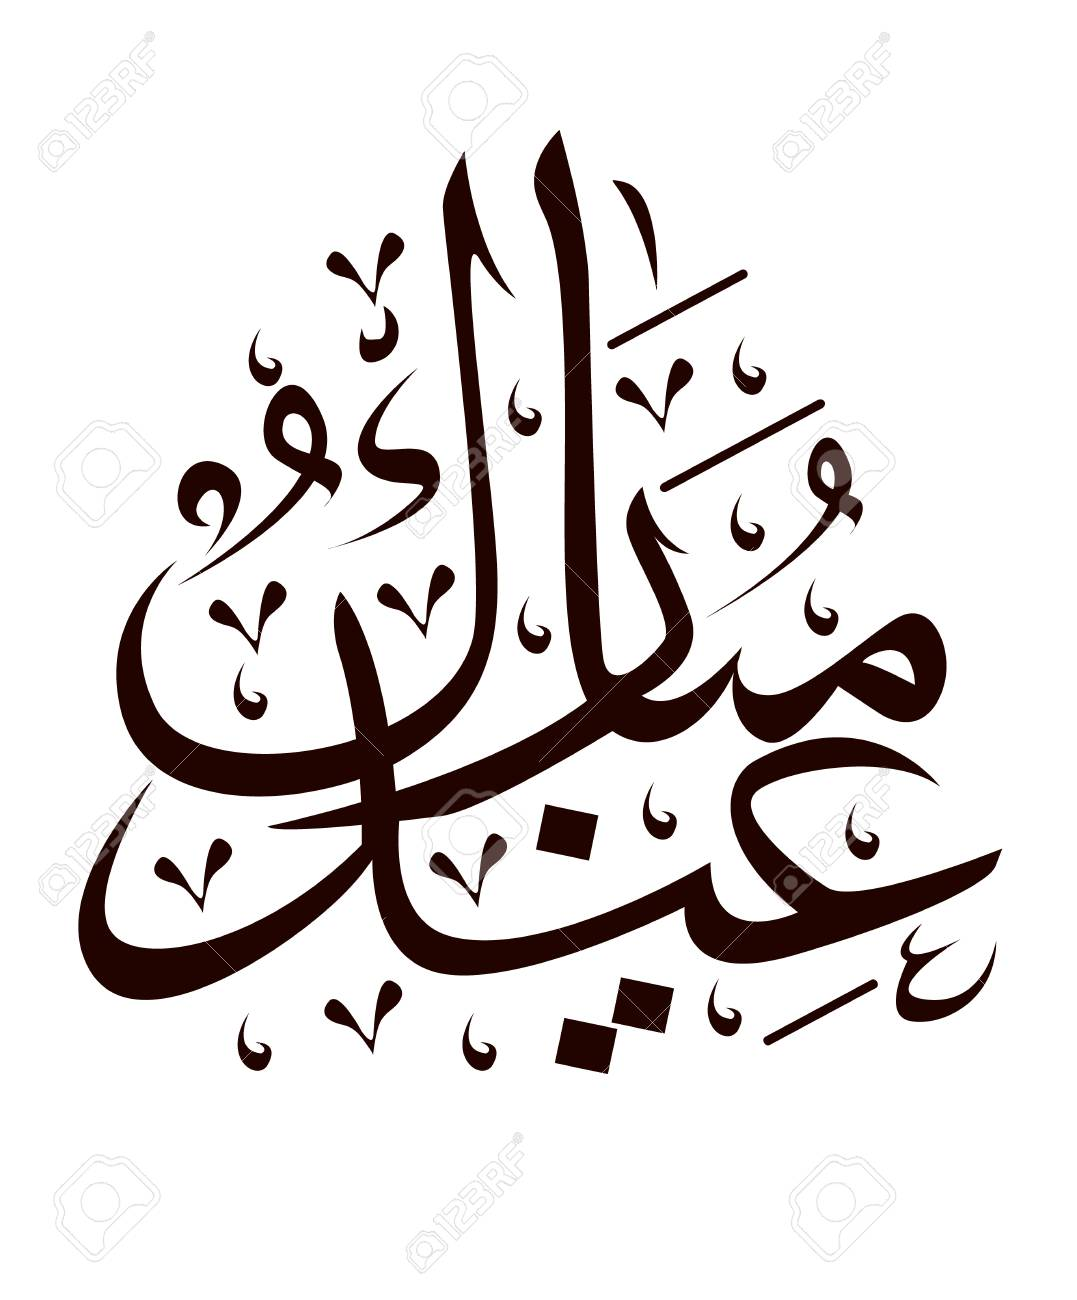 Eid Al Fitr Muslim Traditional Holiday Black And White Vector Illustration